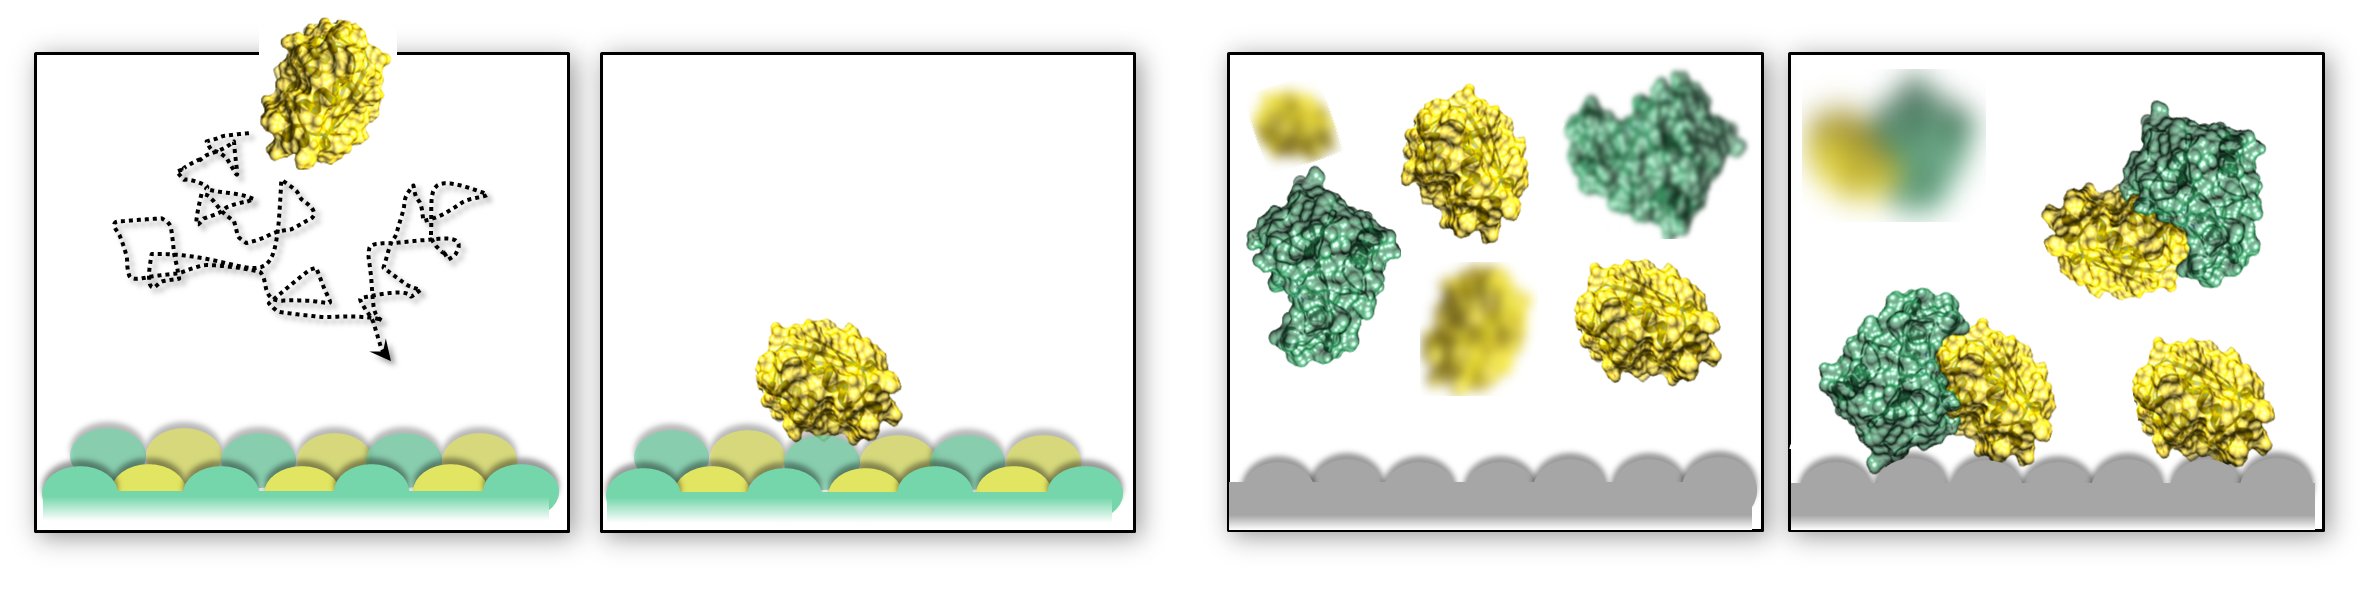 """<font color=""""black""""><strong>Simulations show how proteins recognise and bind to surfaces</strong></font>"""